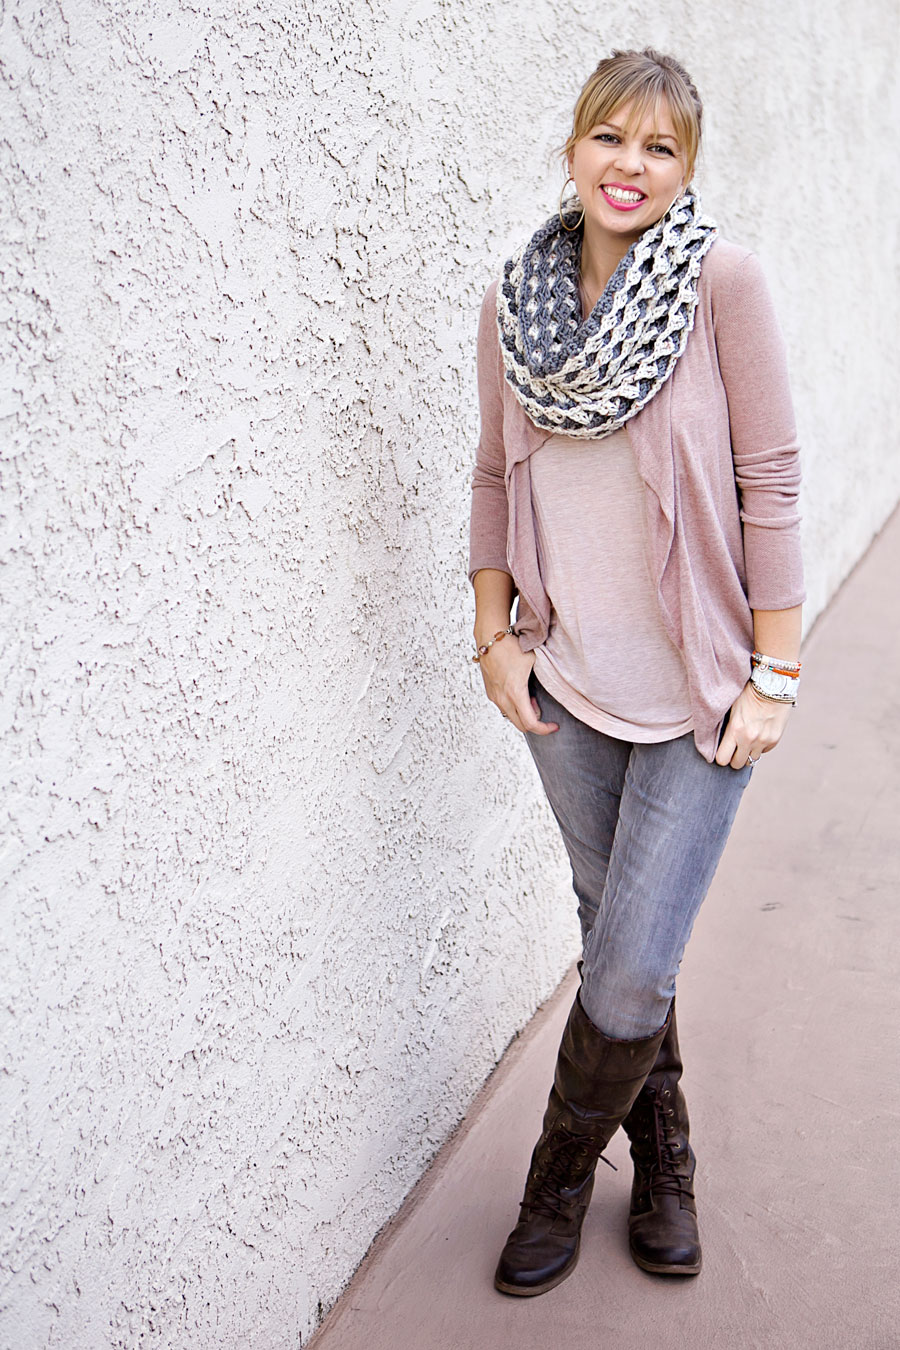 mom-style-handmade-scarf-sweater-gray-jeans-boots-01